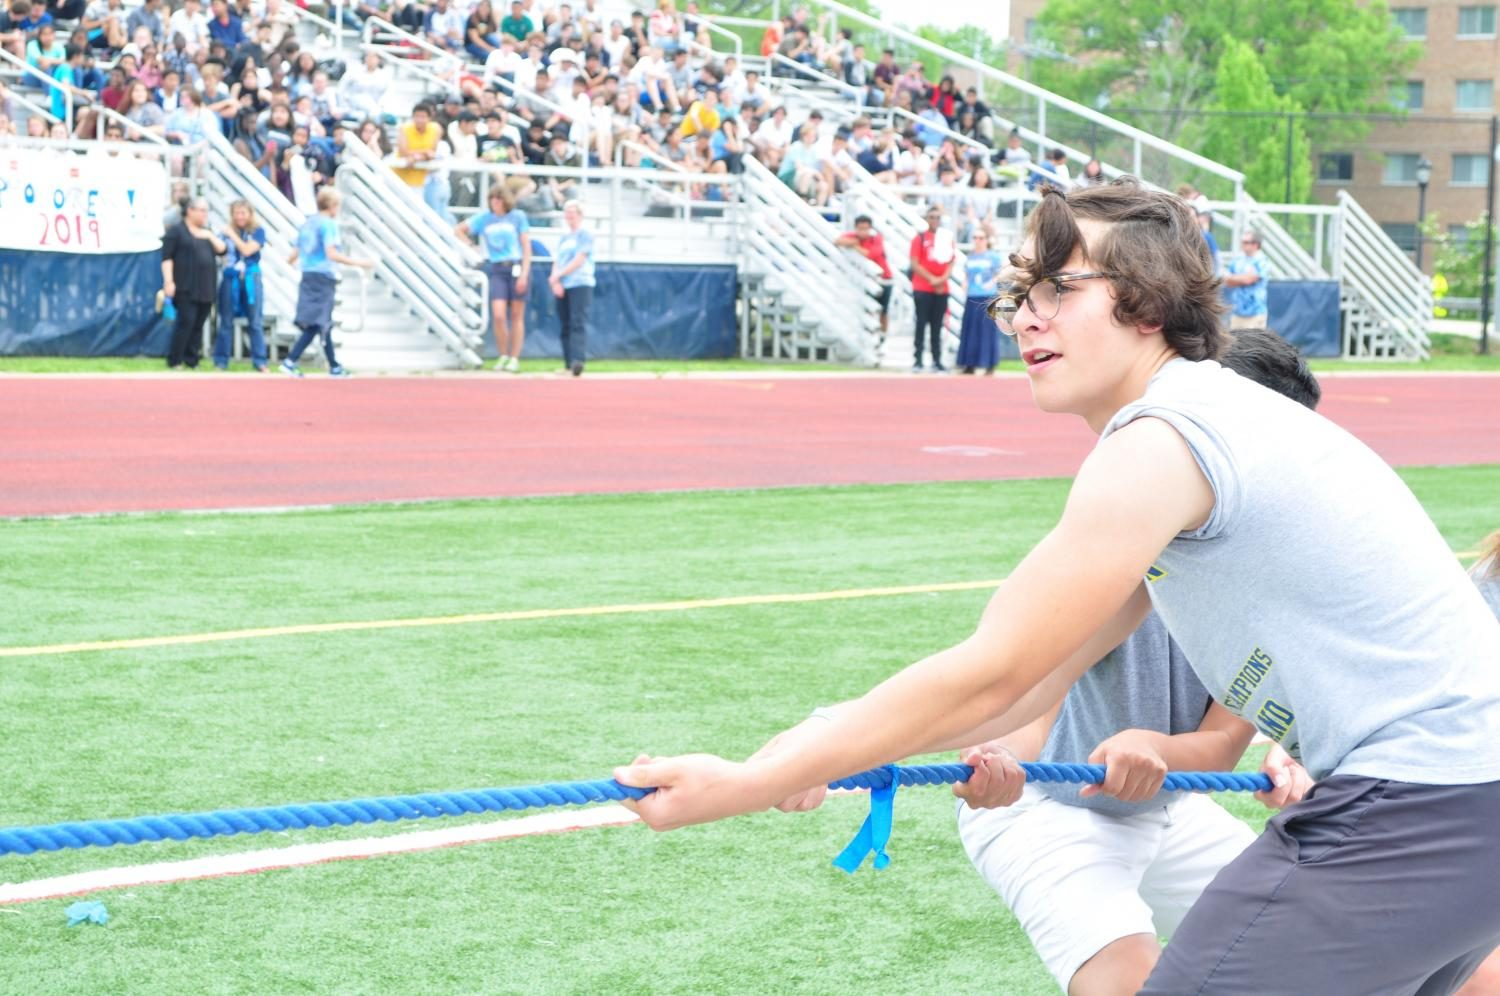 Freshman Noah Toth tries to edge the seniors out for a win in the tug-of-war event.